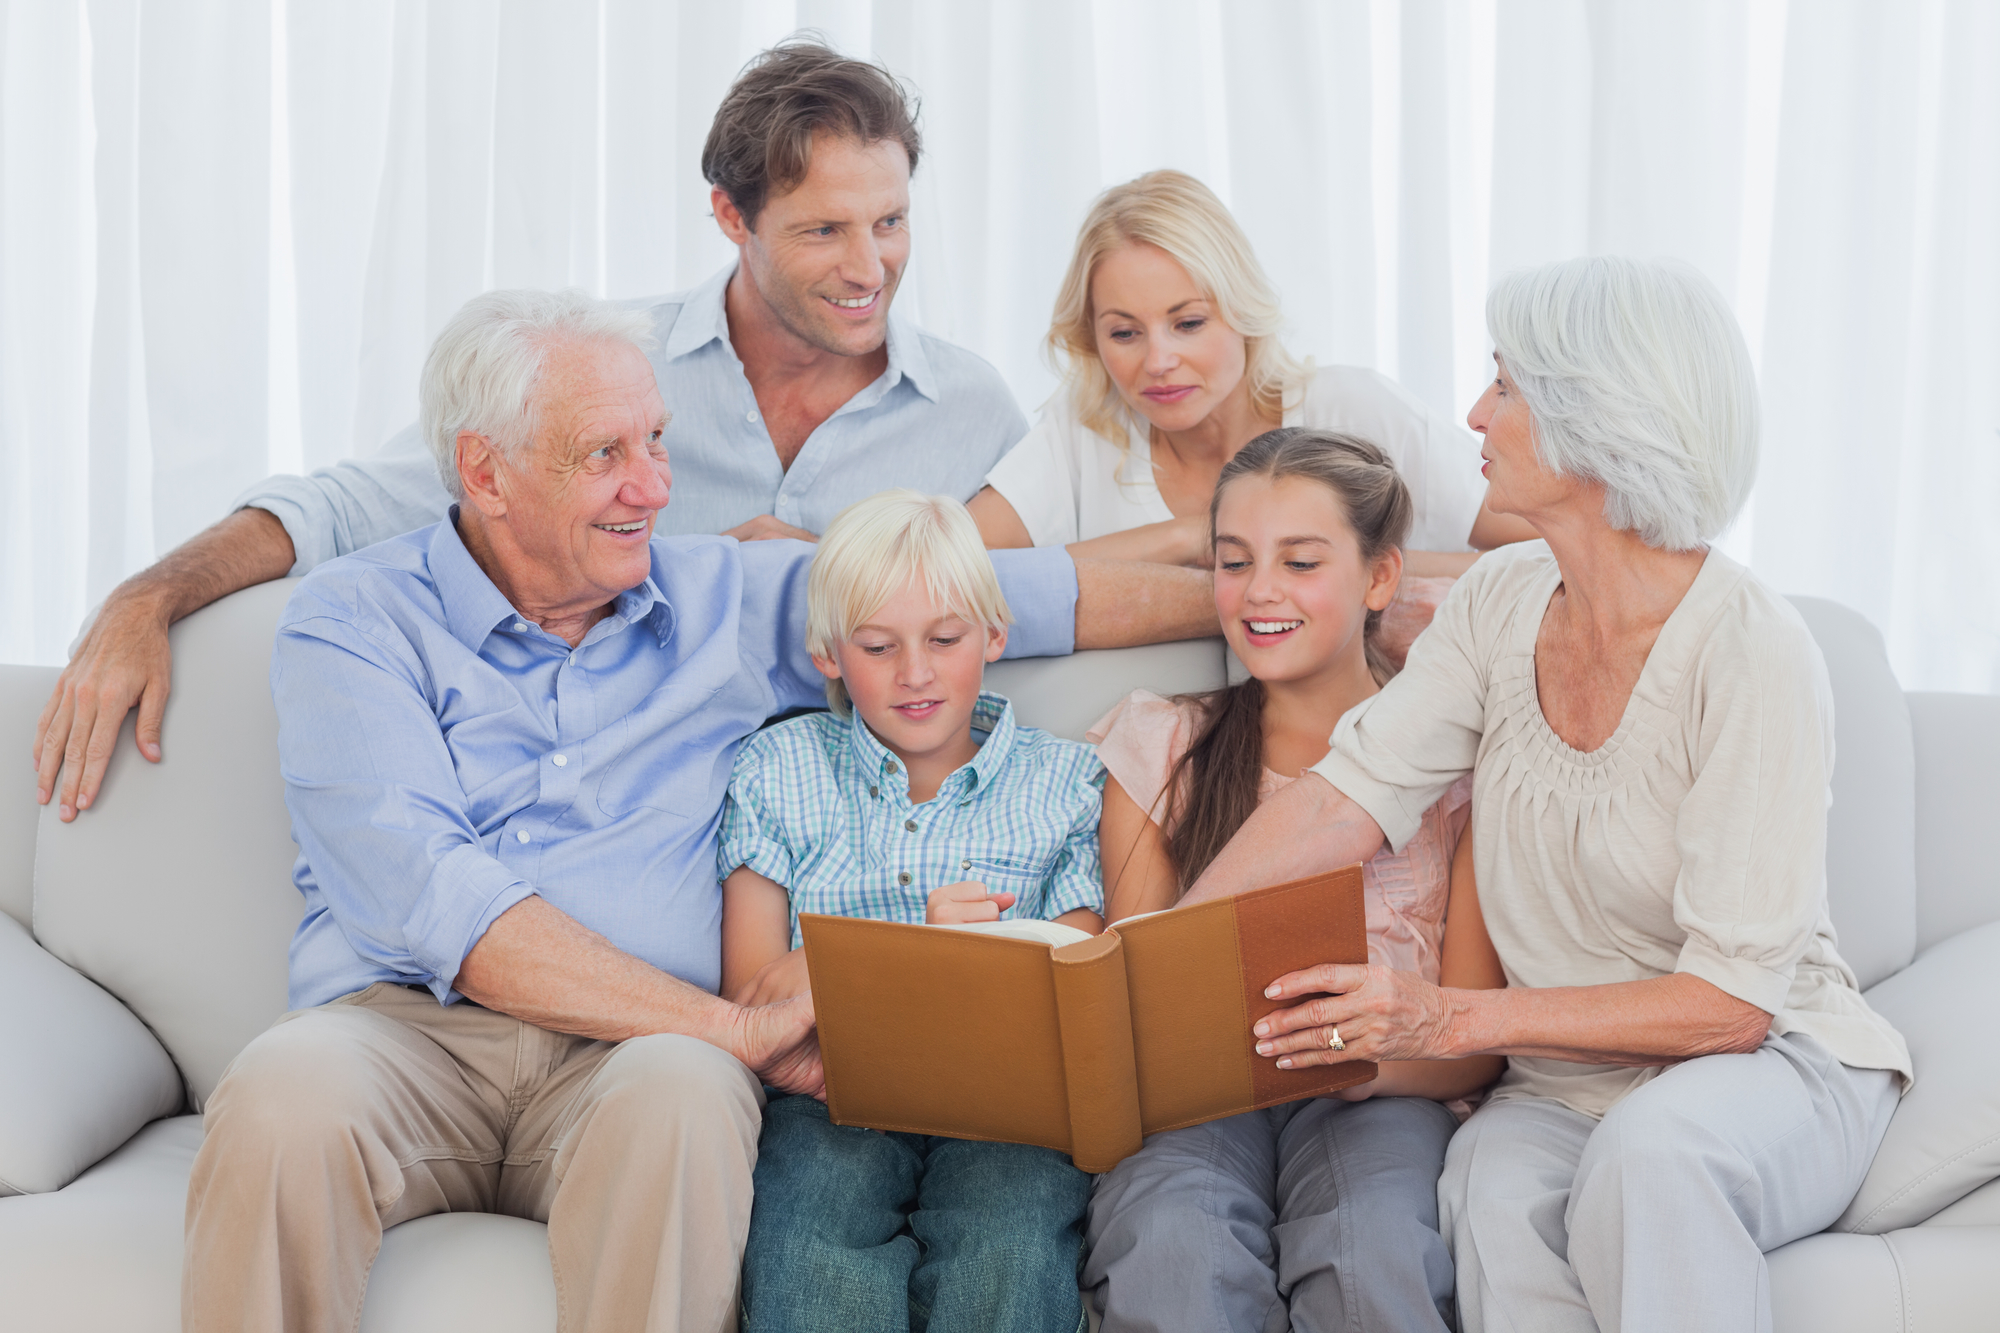 Simple living tips. Ways your family can live a more simplified lifestyle